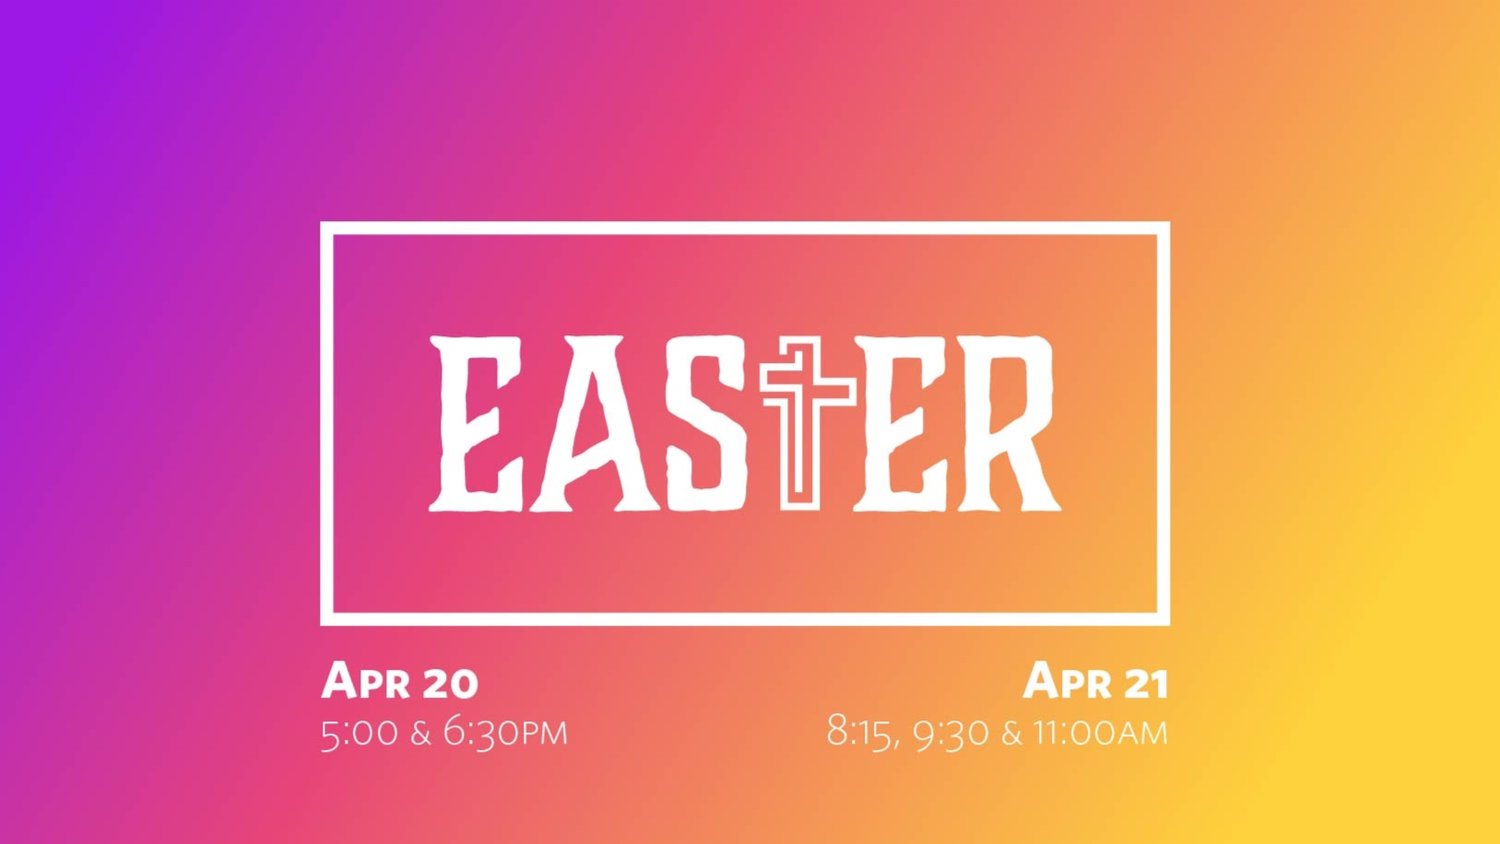 Easter Service & Food Drive — WFC Leavenworth